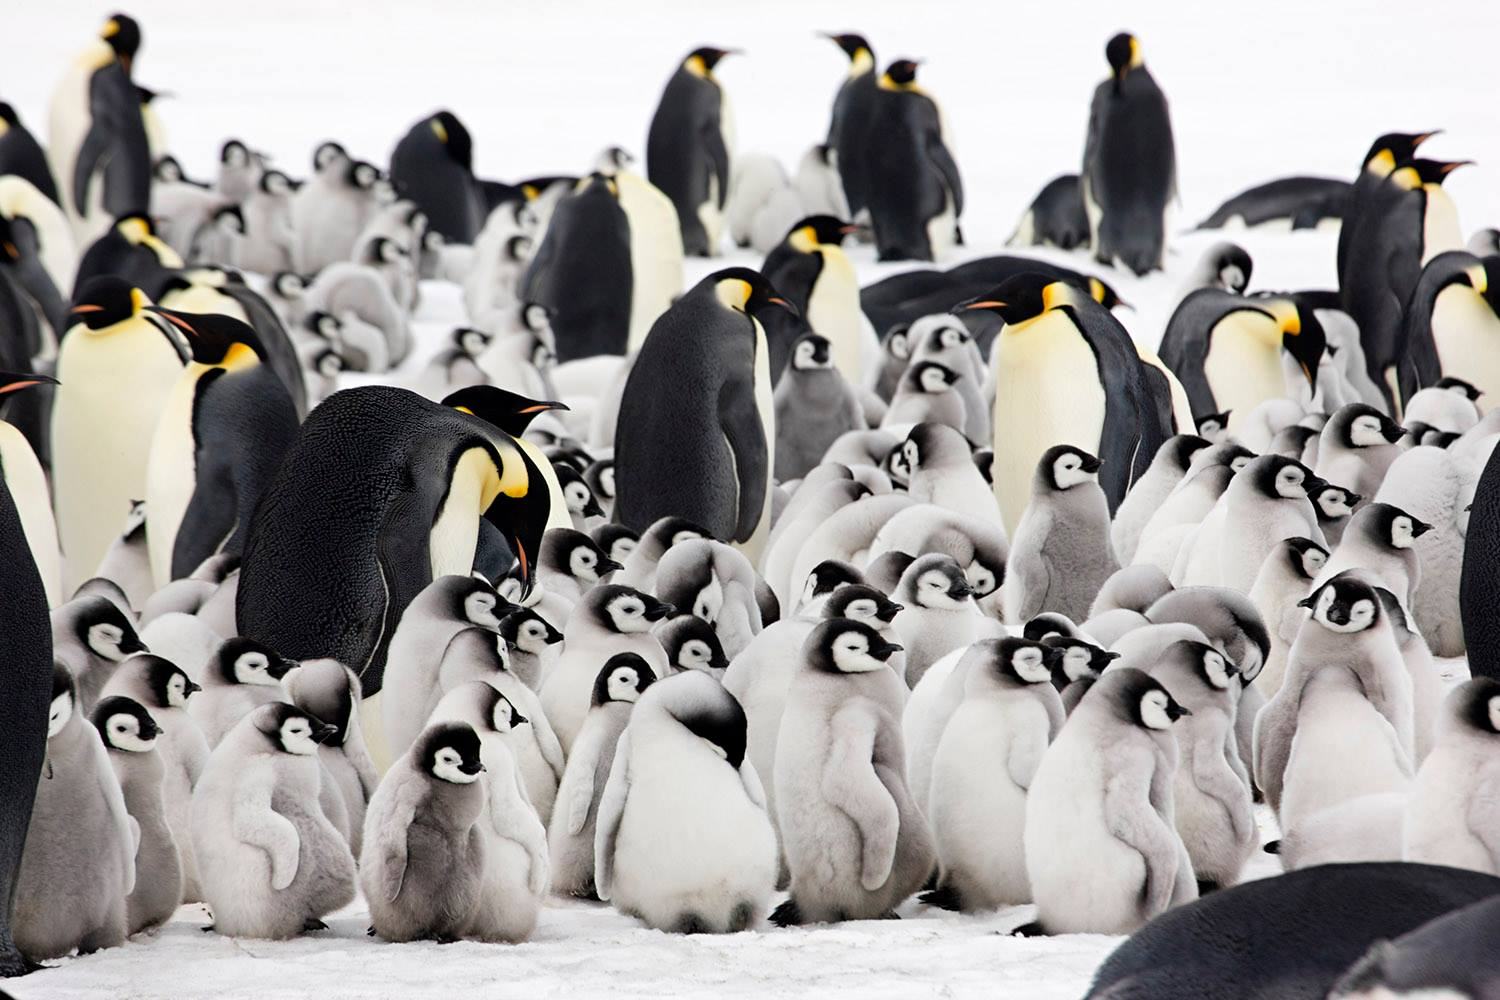 Witness thousands of adult Emperor penguins and their chicks in their sea ice rookery near Snow Hill in the Weddell Sea. Photo credit: Sue Flood Photography